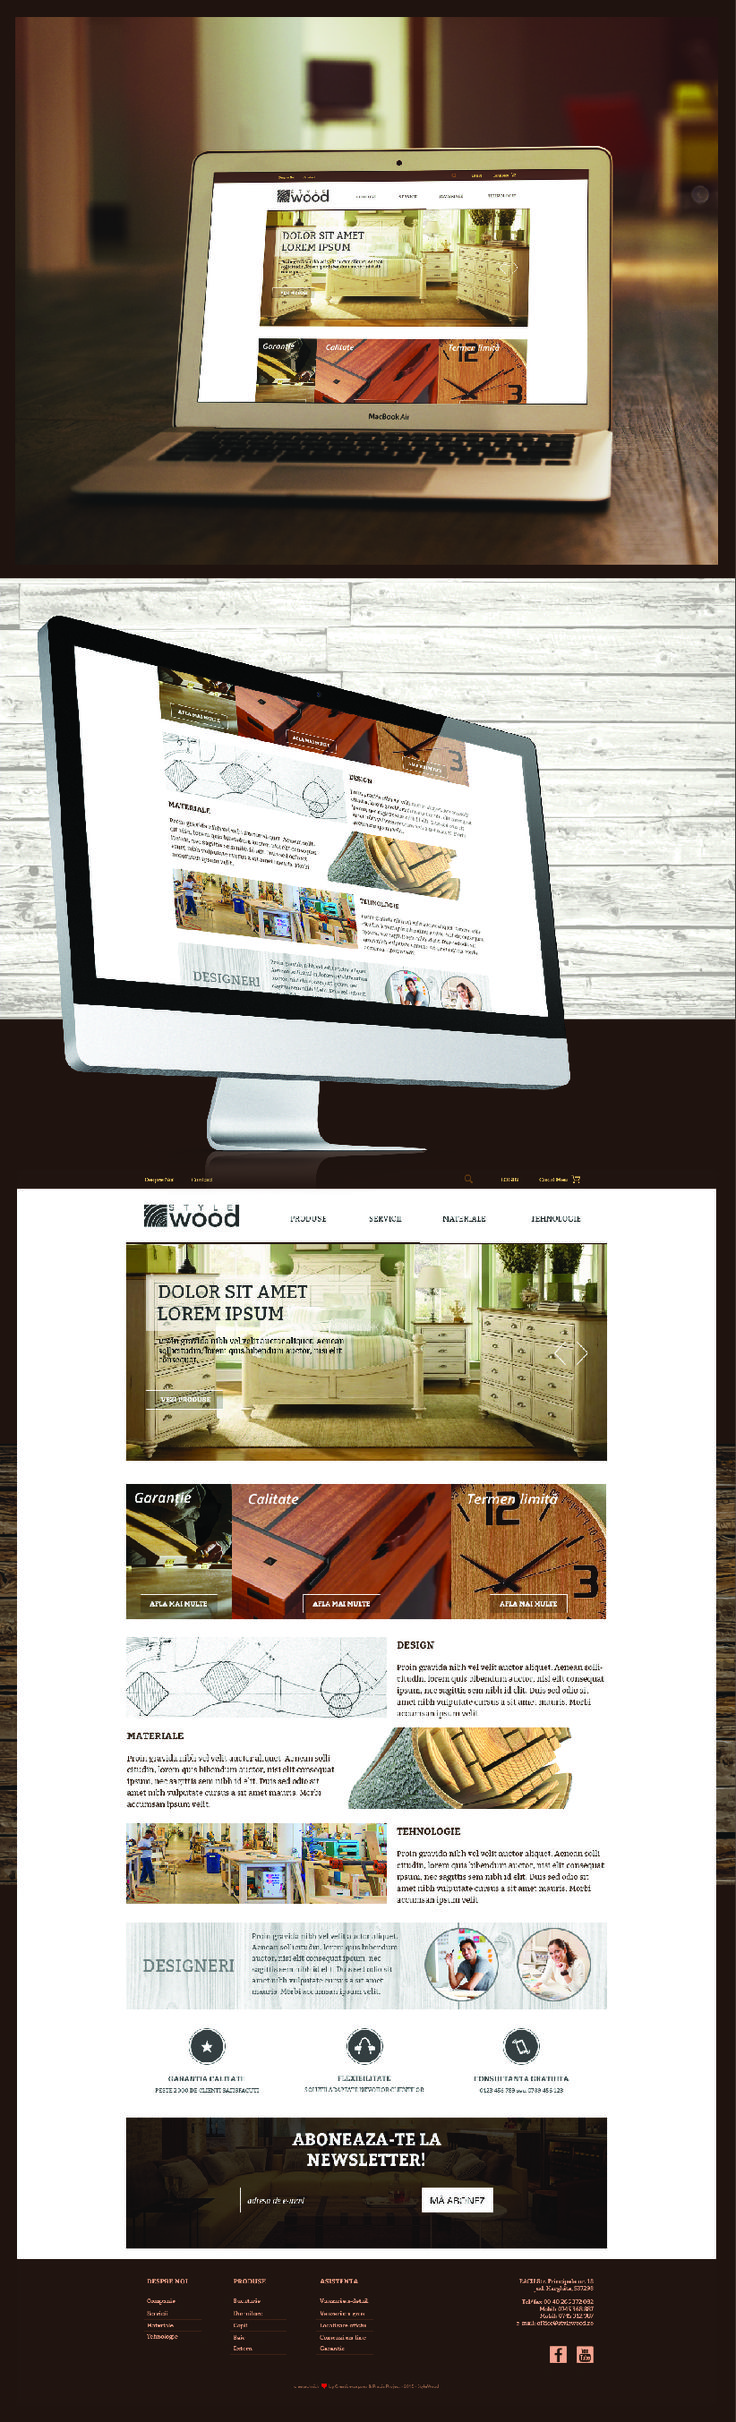 Website design for Style Wood - unique and high class furniture design company